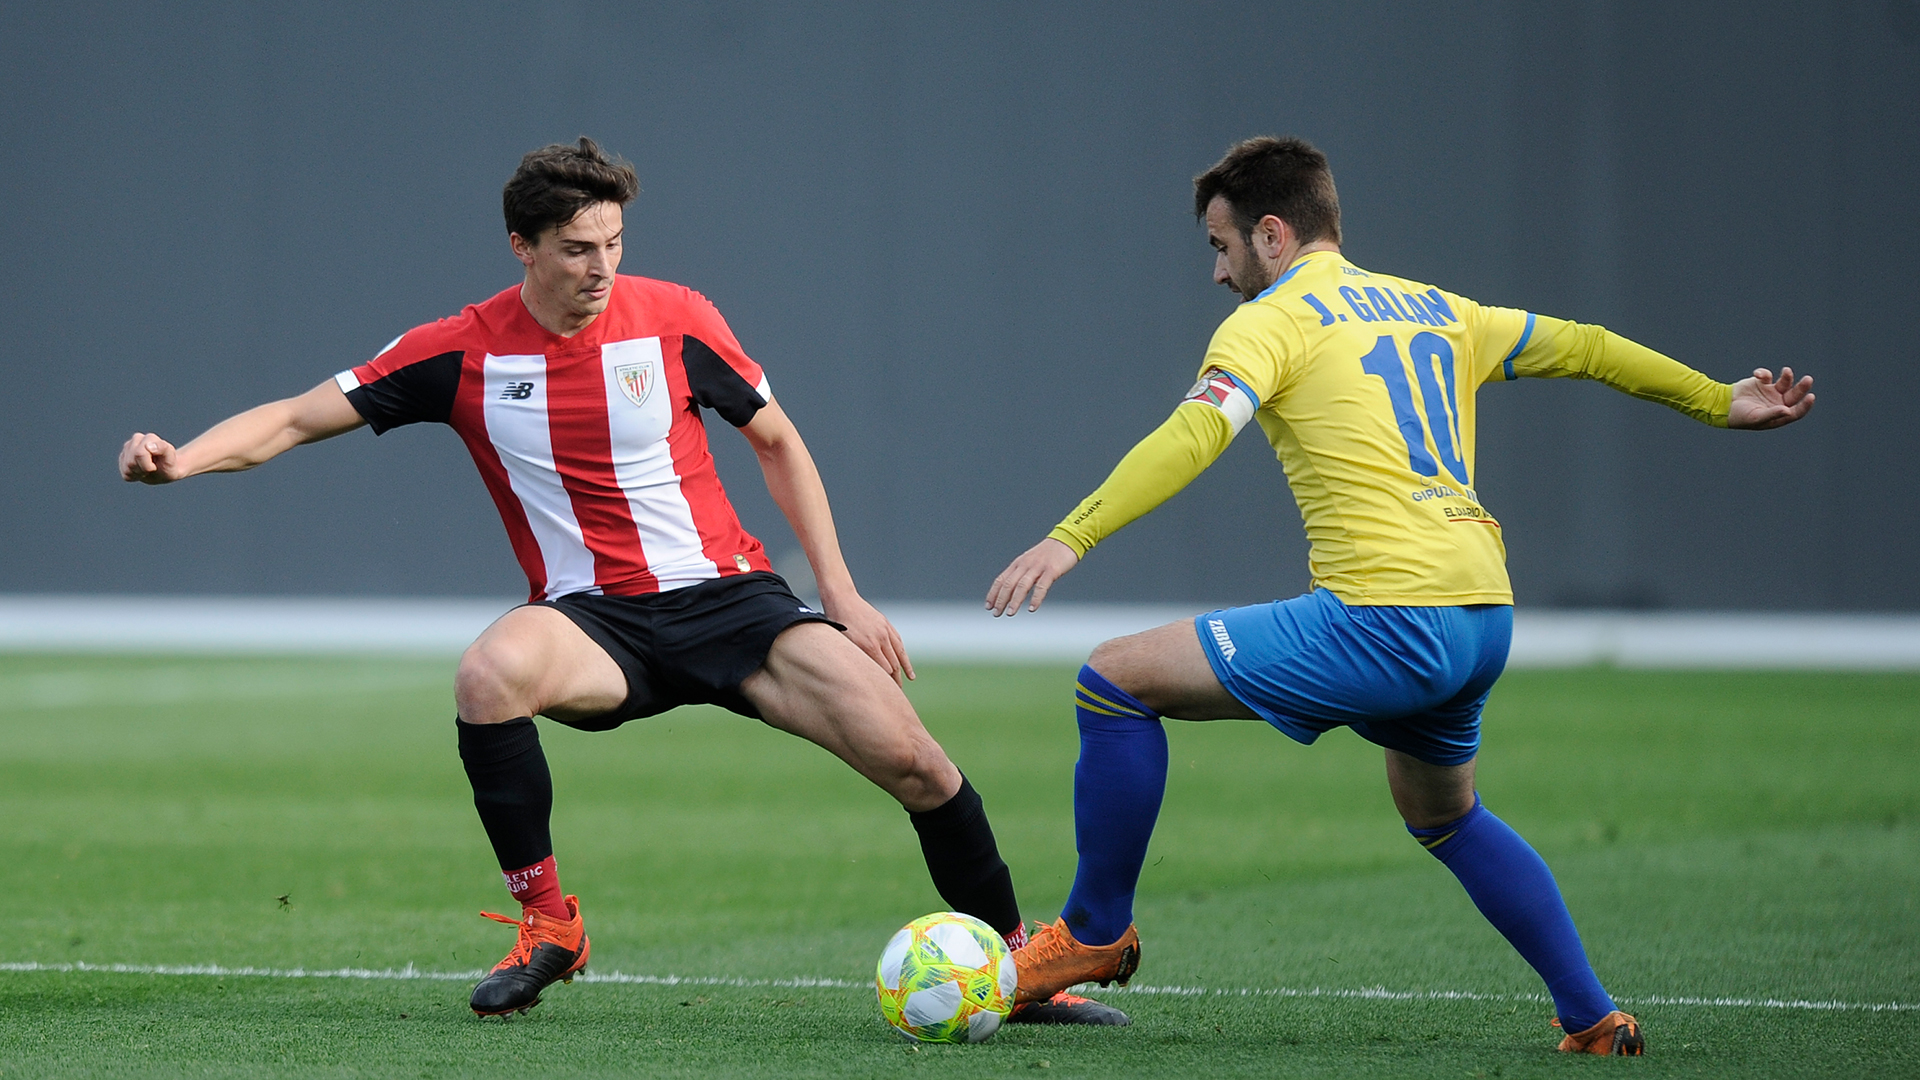 Bilbao Athletic, a prolongar la buena racha